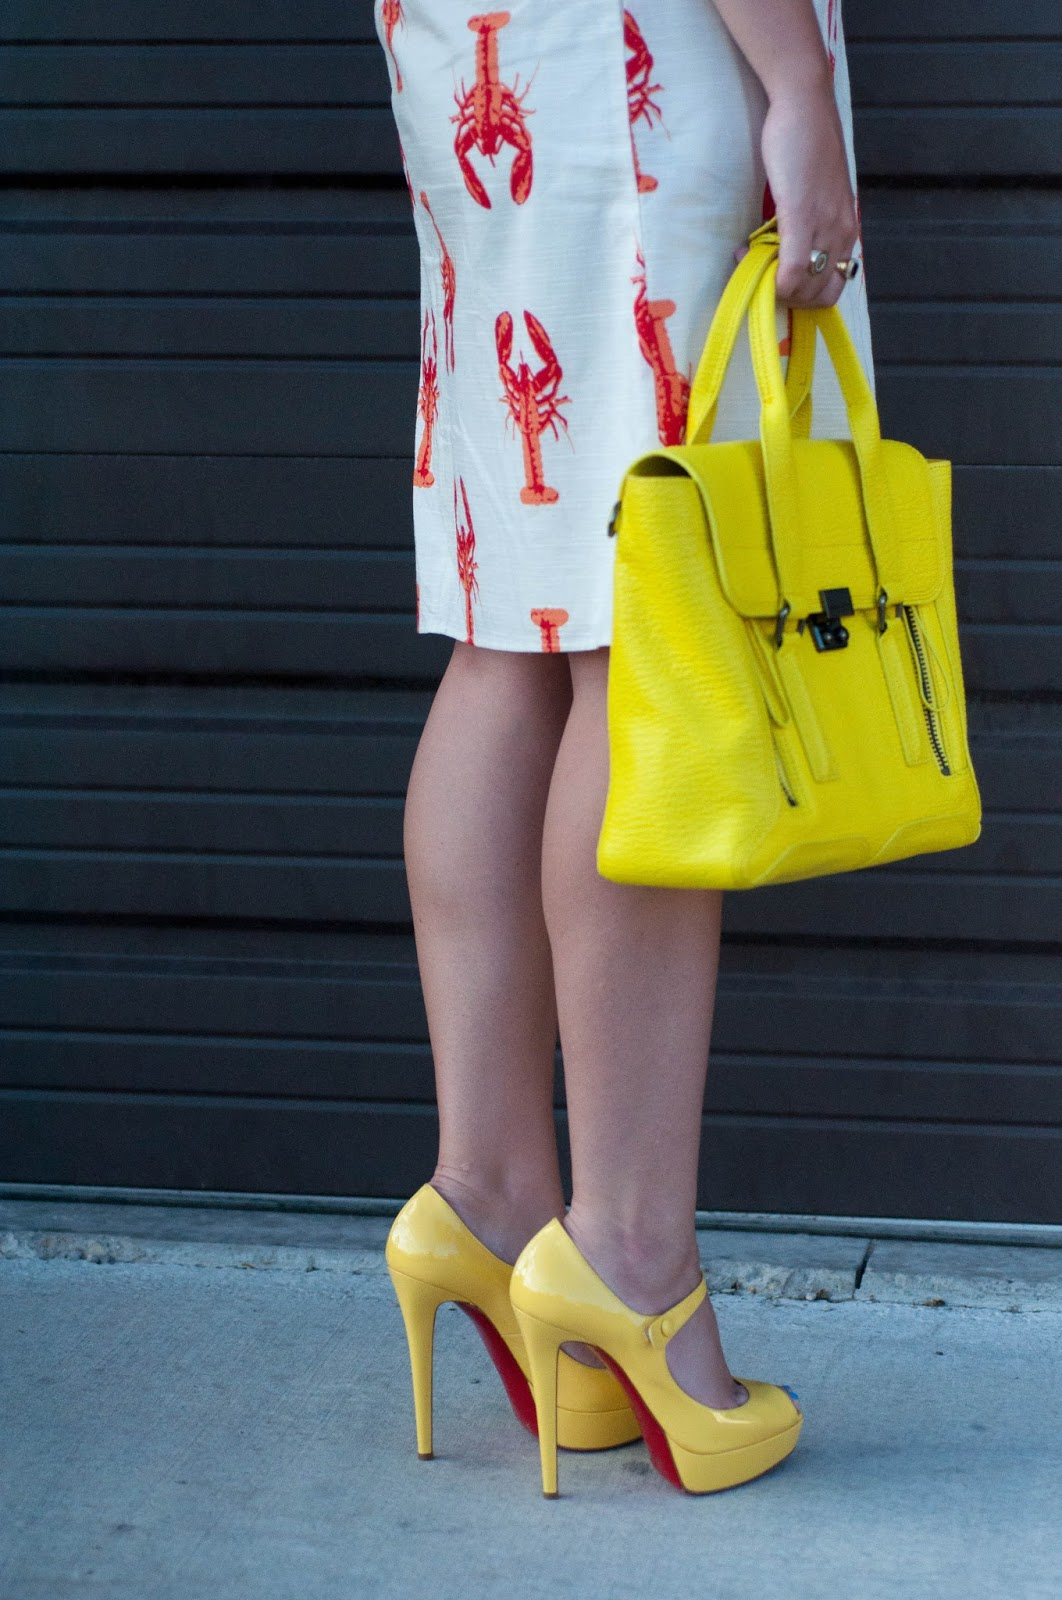 christian louboutin, red soles, christian louboutin bana, yellow christian louboutins, 3.1 phillip lim pashli satchel, ootd